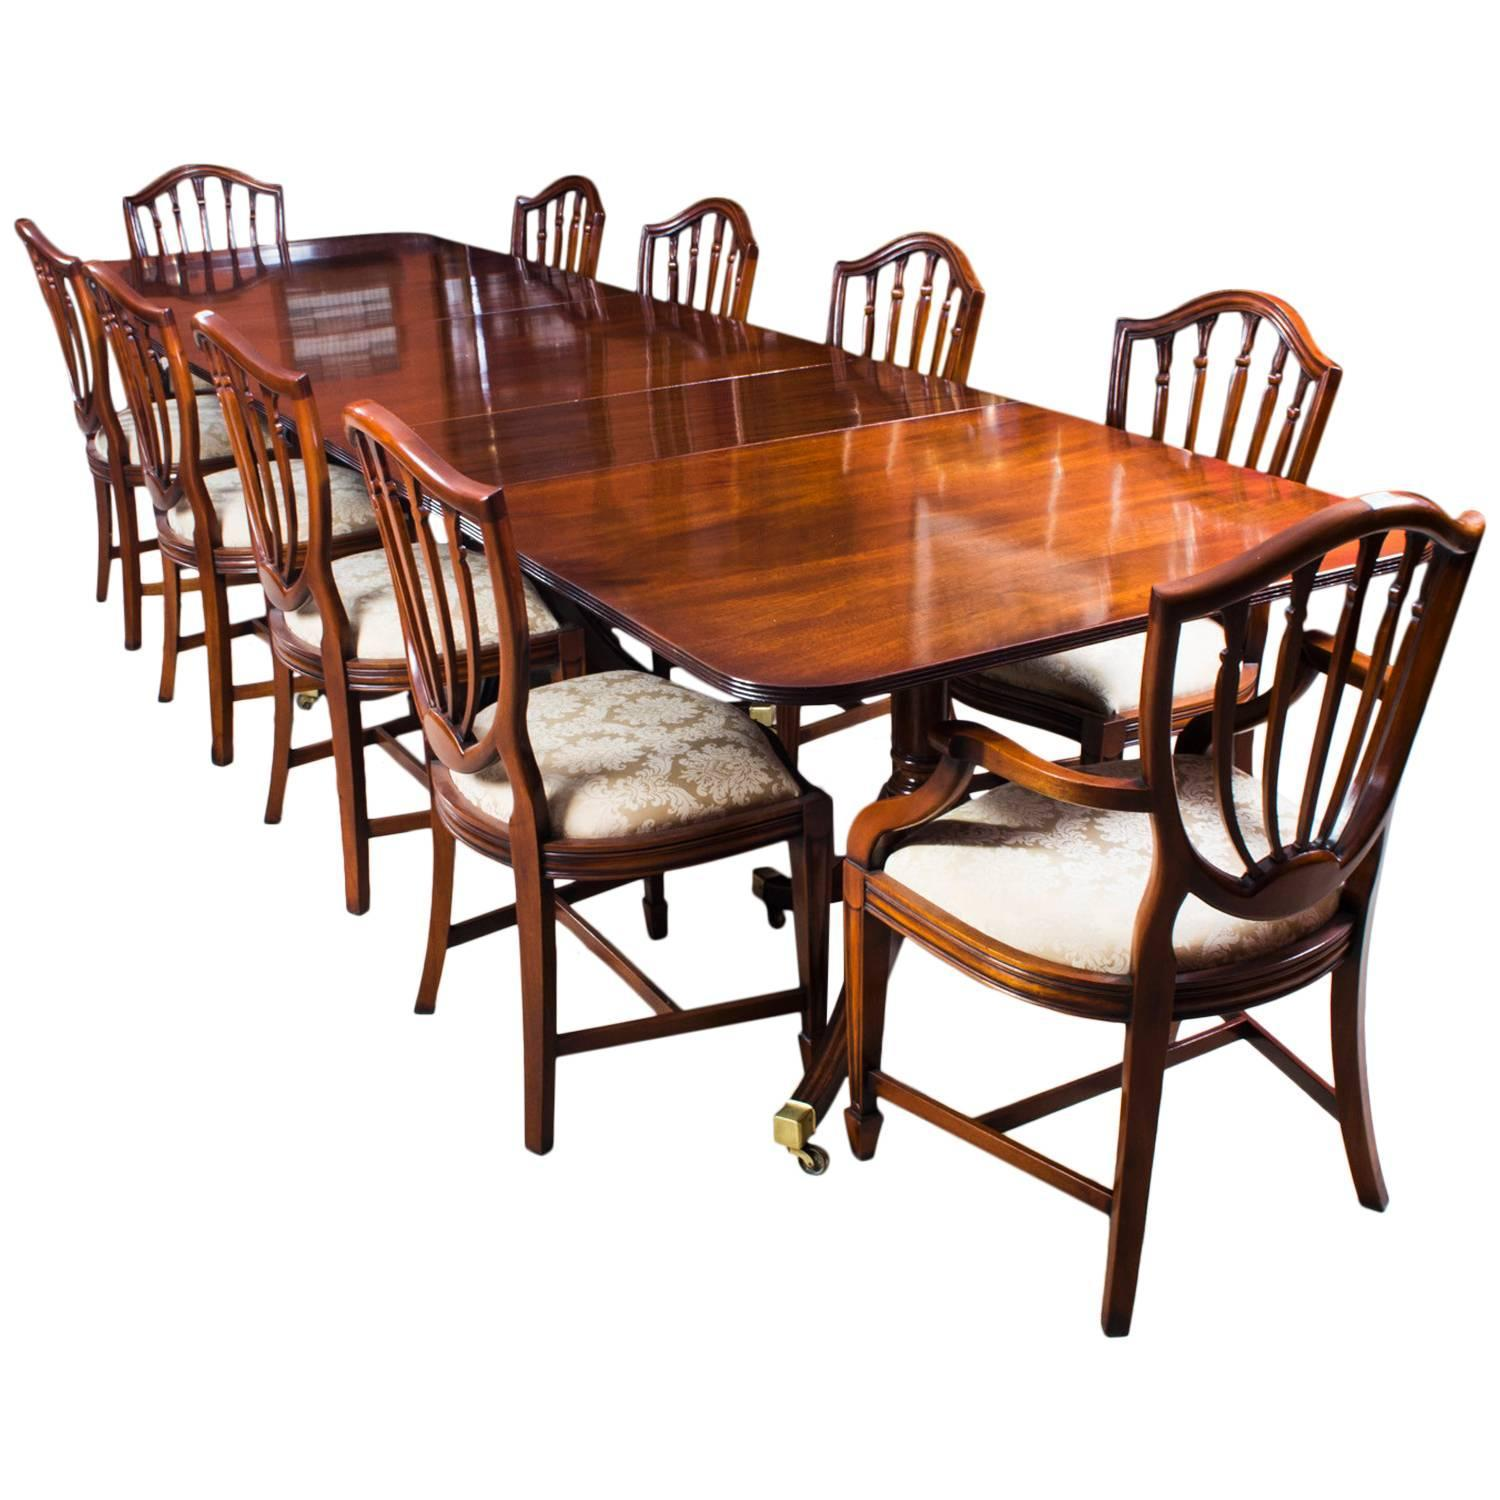 Antique Dining Room Table Chairs: Antique Regency Three-Pillar Dining Table And Ten Chairs